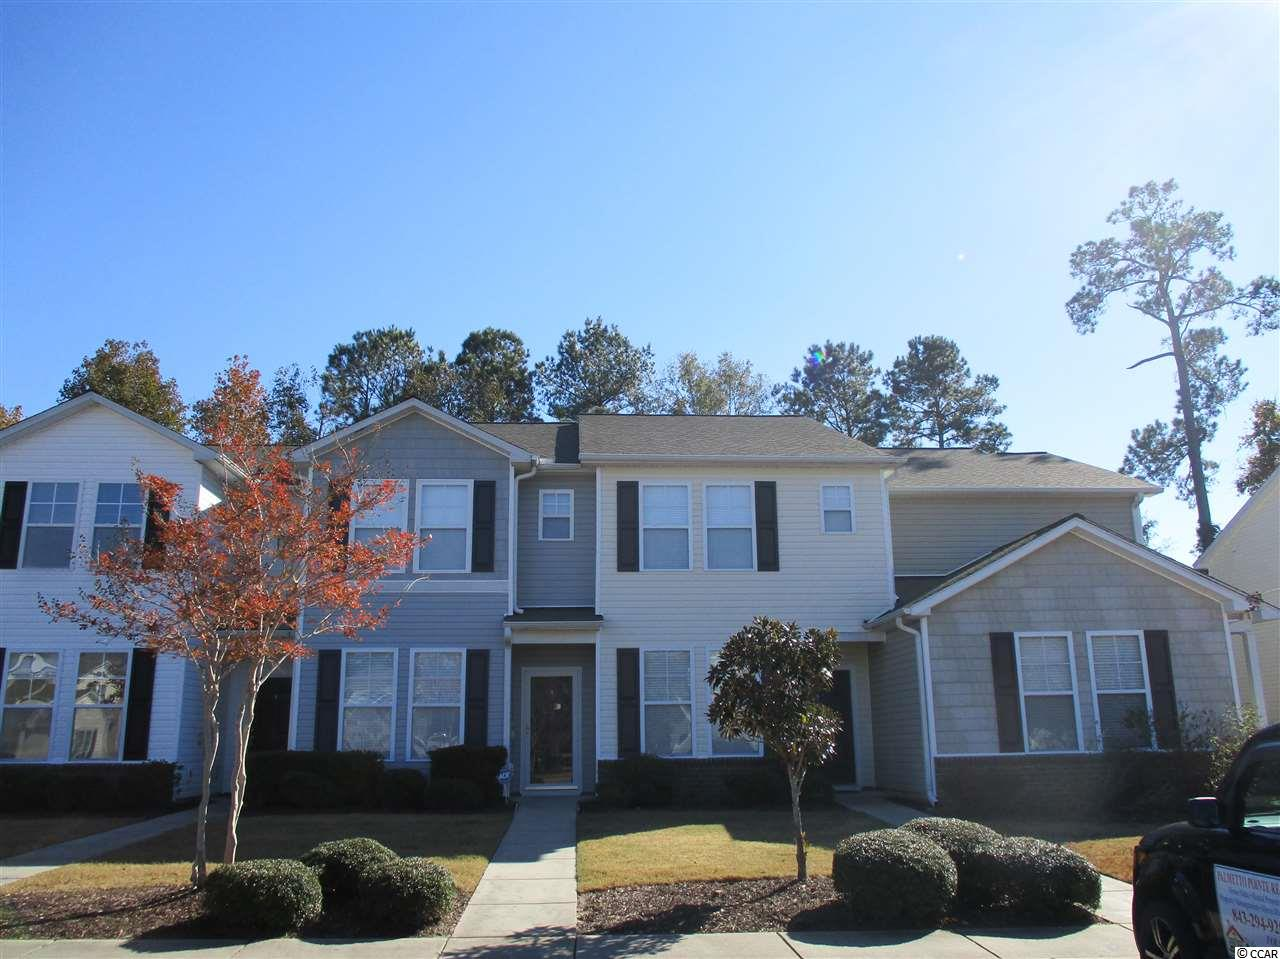 Townhouse MLS:1824464 WELLINGTON - SOCASTEE  174 Olde Towne Way Myrtle Beach SC